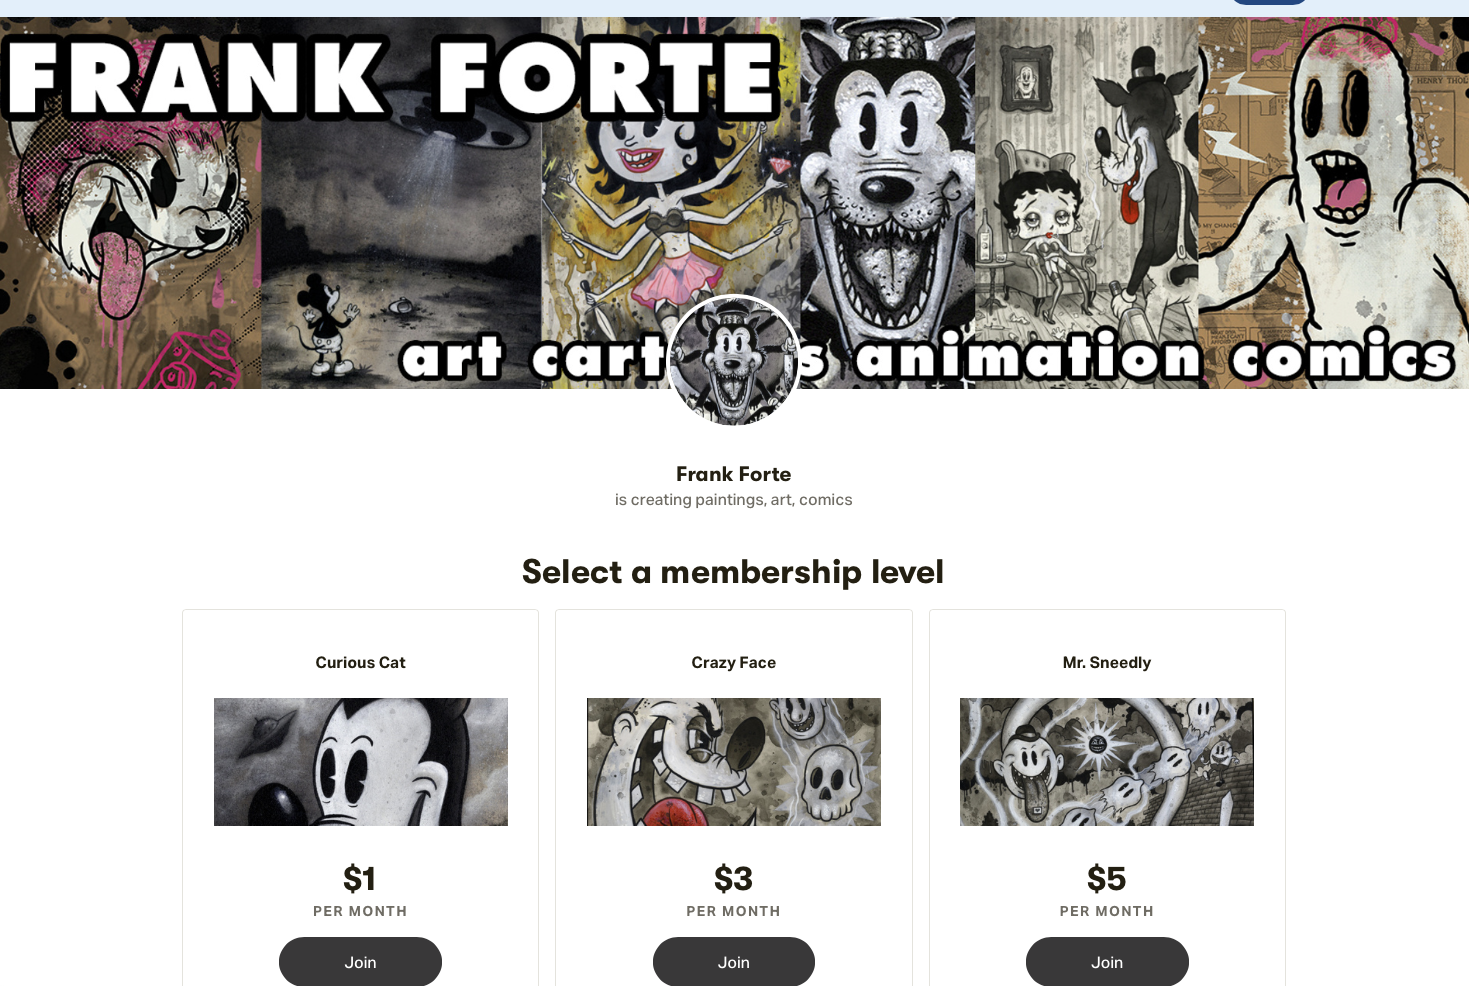 The Patreon of Frank Forte